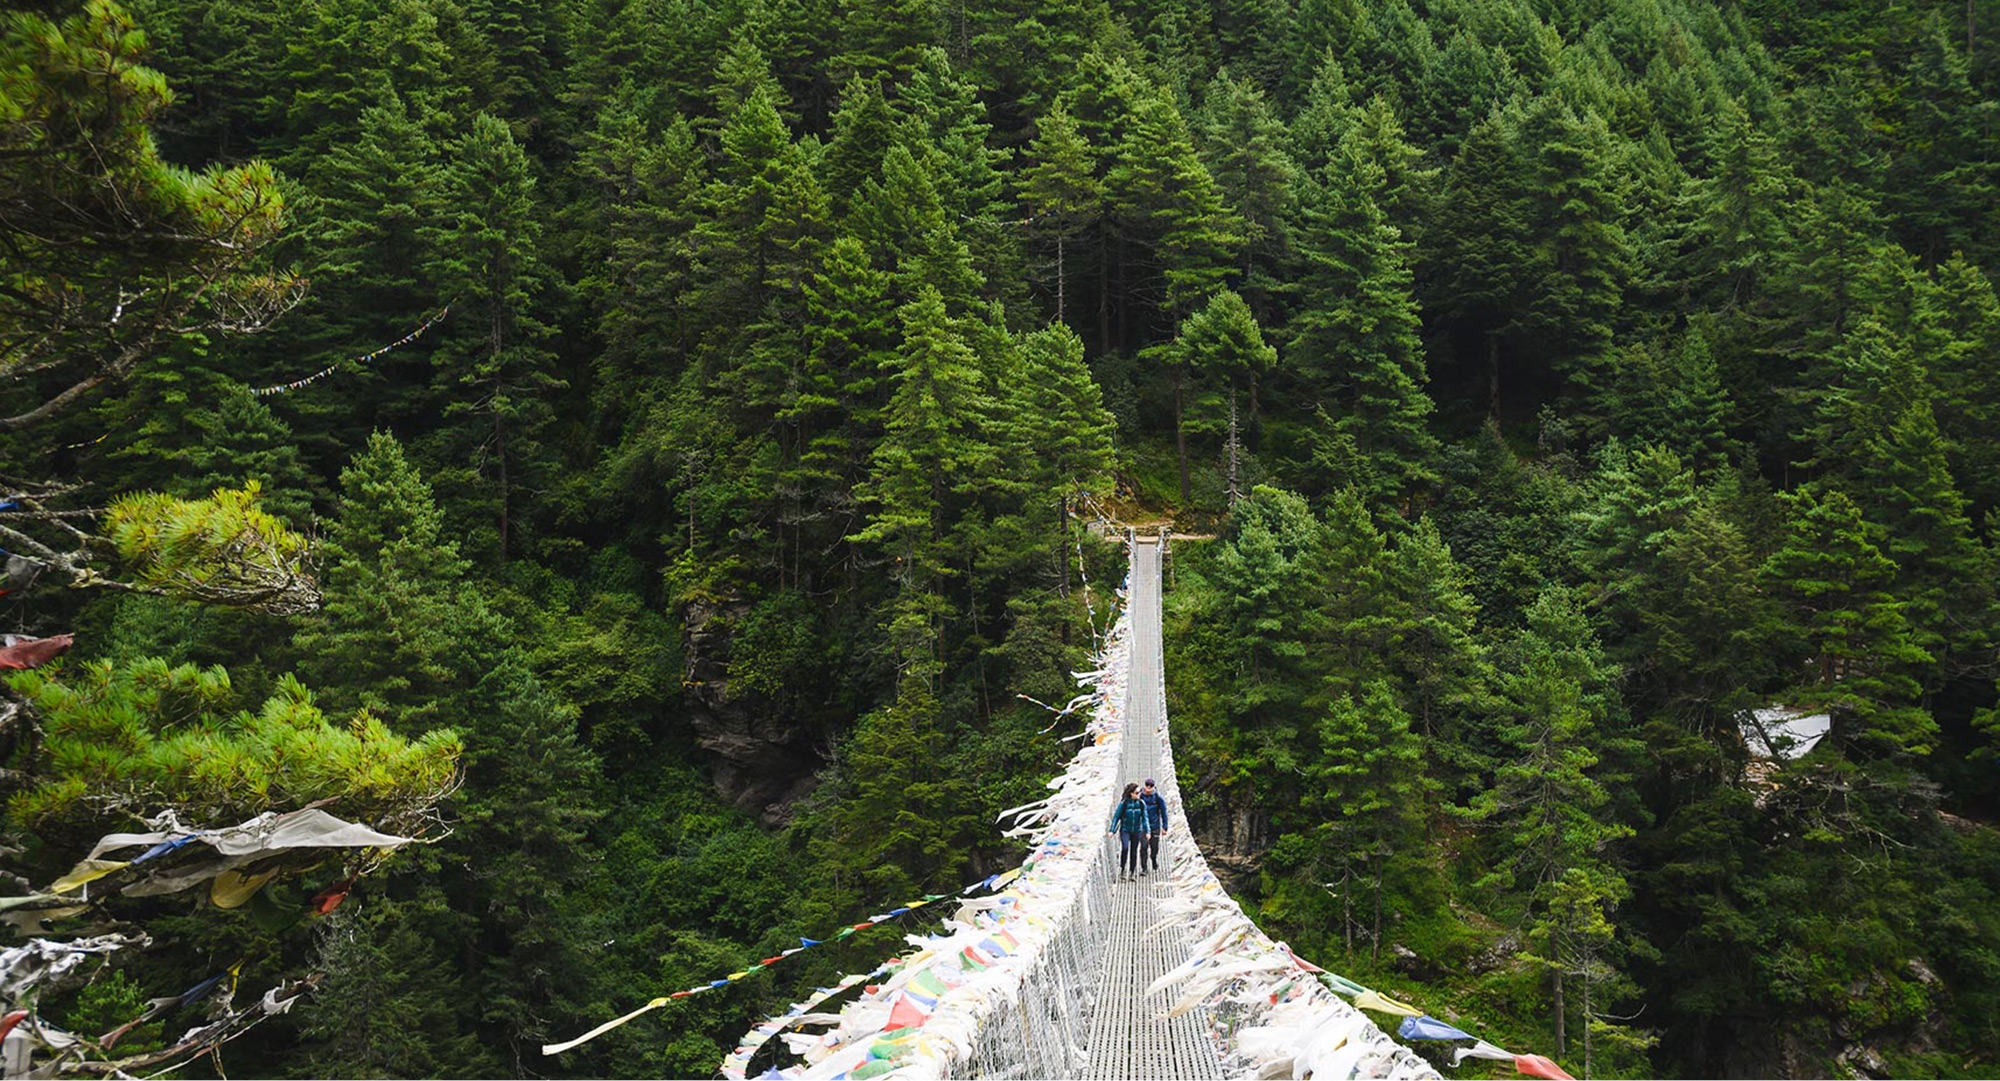 Trekking over suspension bridge shot